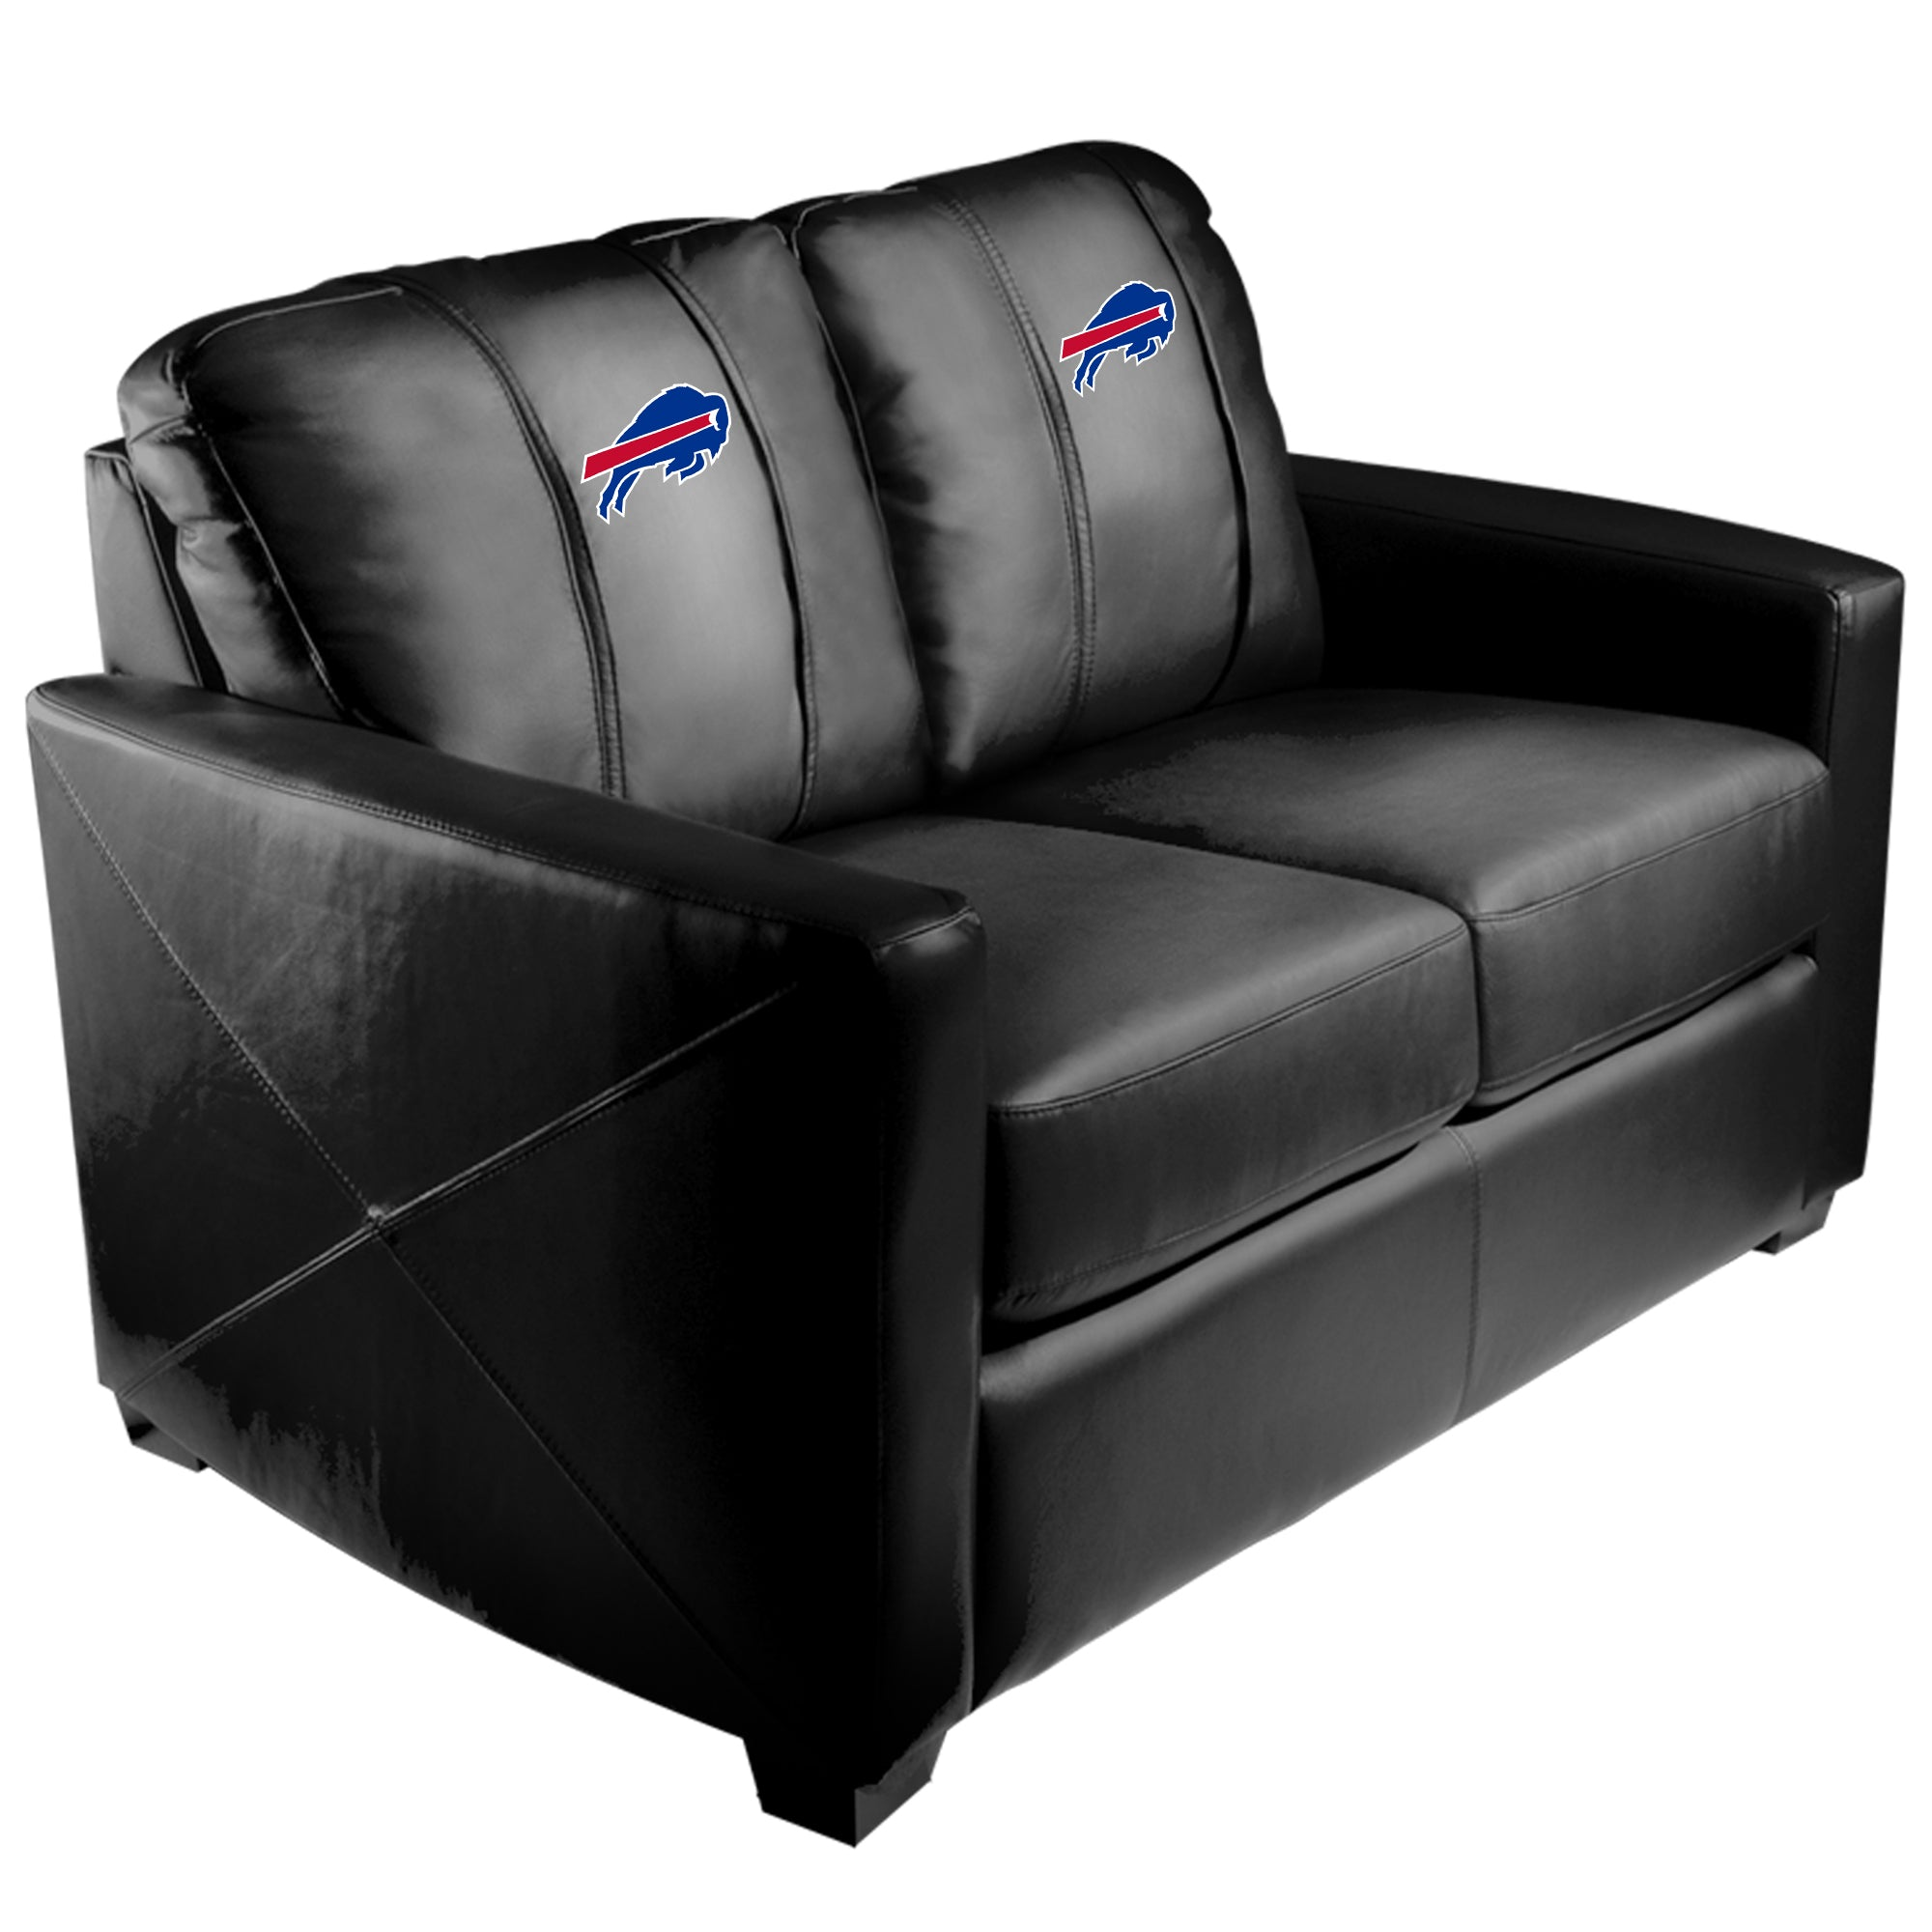 Silver Loveseat with  Buffalo Bills Primary Logo